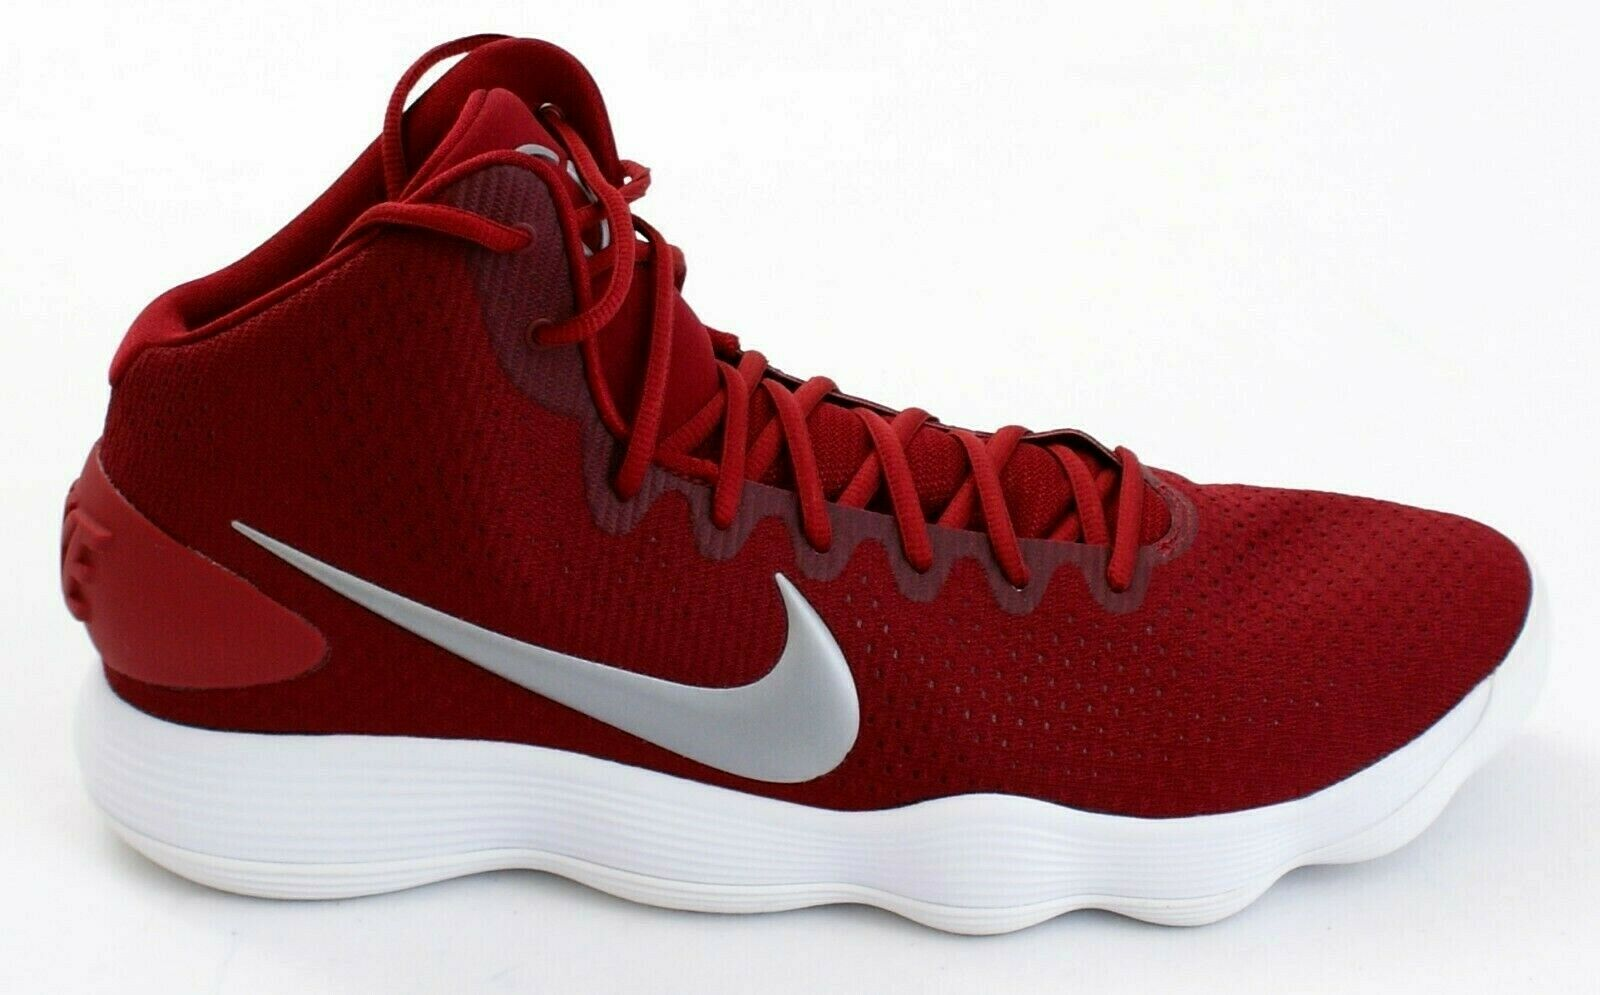 Nike React Hyperdunk TB 2017 Maroon Basketball shoes Sneakers Men's NEW